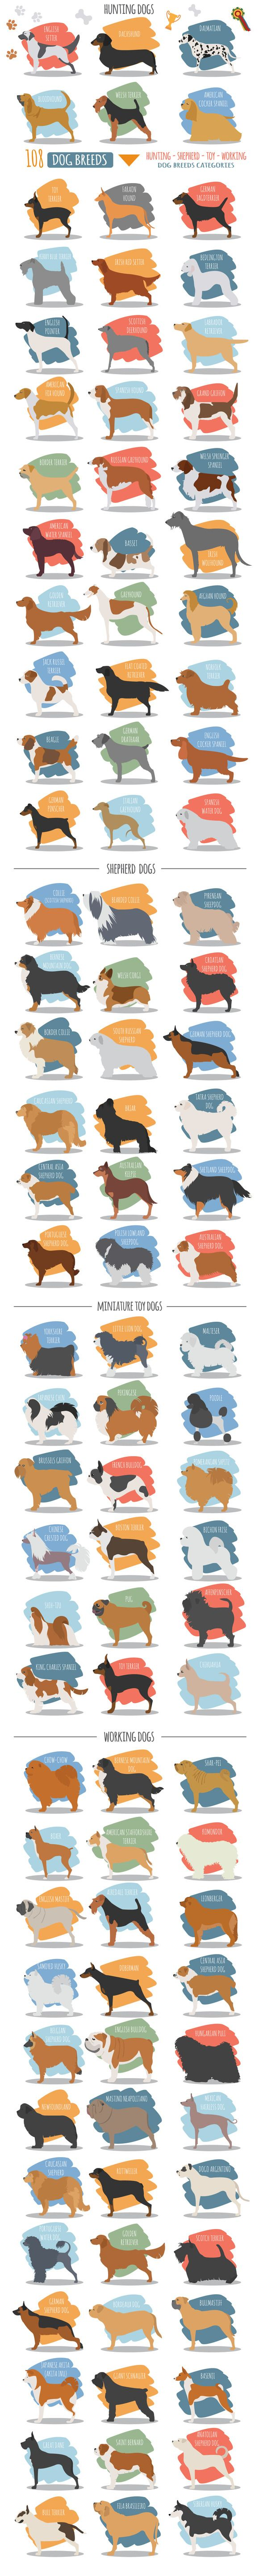 DOG breeds BIG set by design shop on @creativemarket